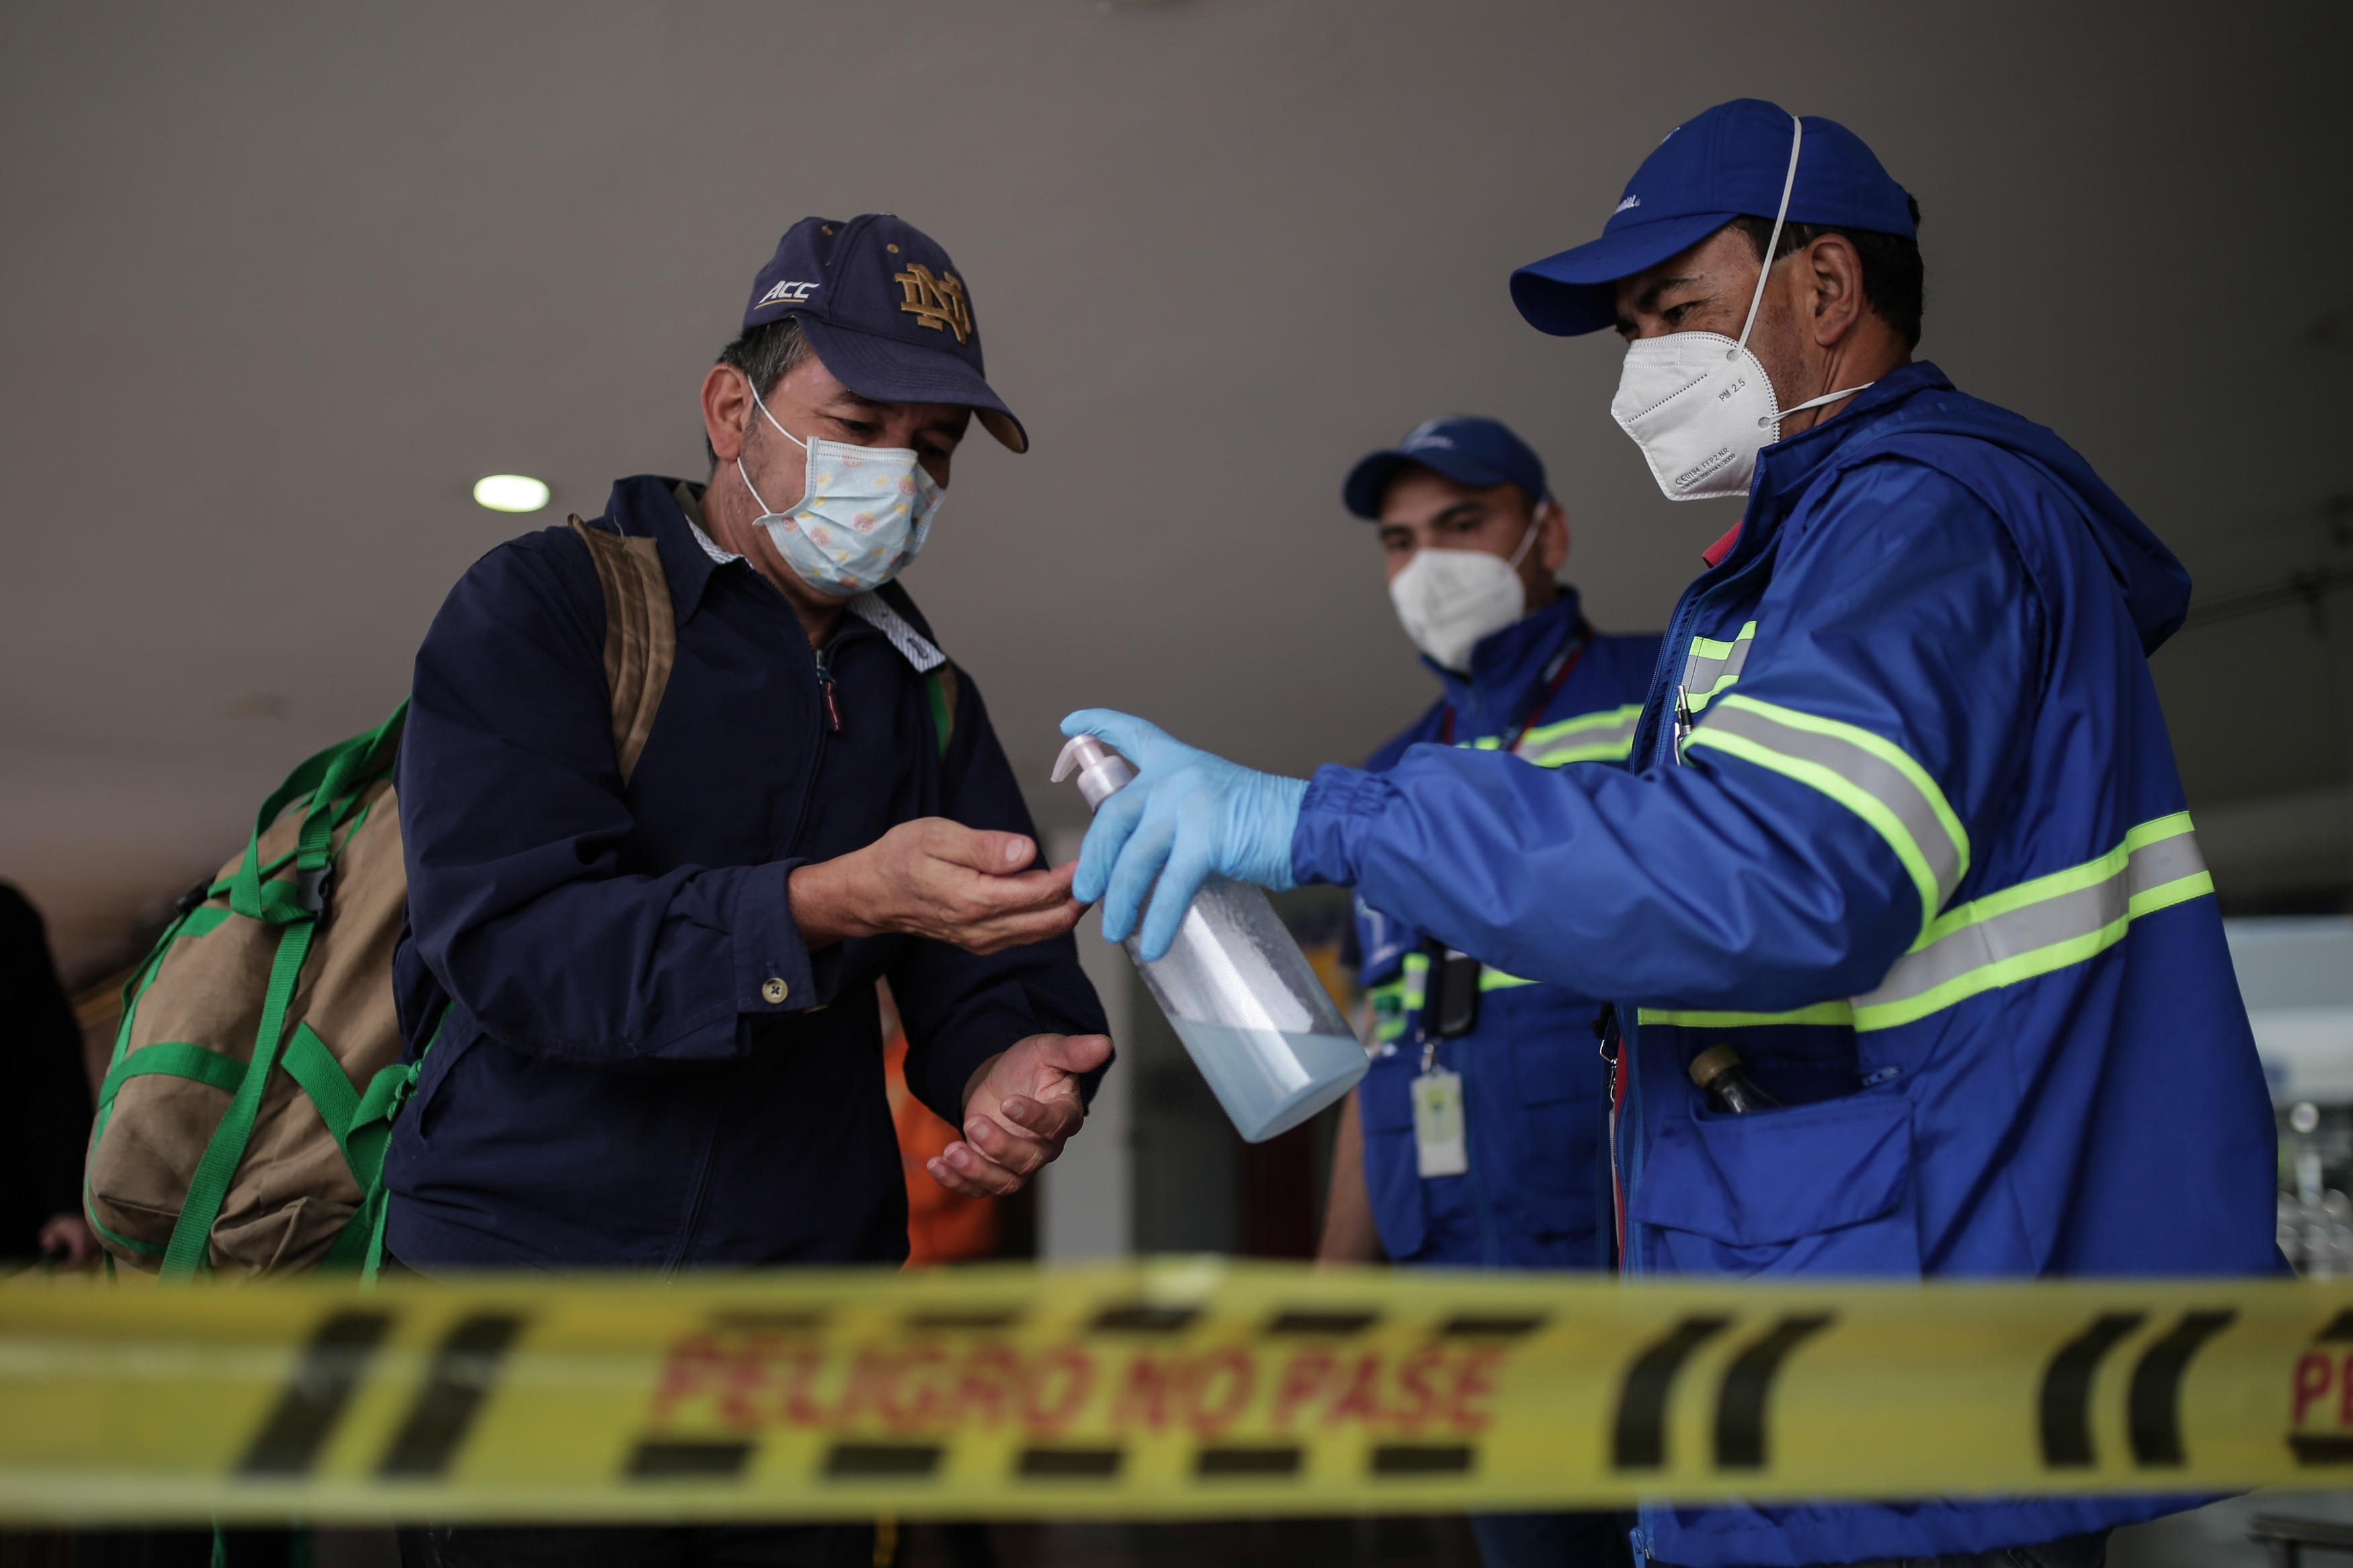 LatAm reports more COVID-19 cases, takes strict measures against virus spread